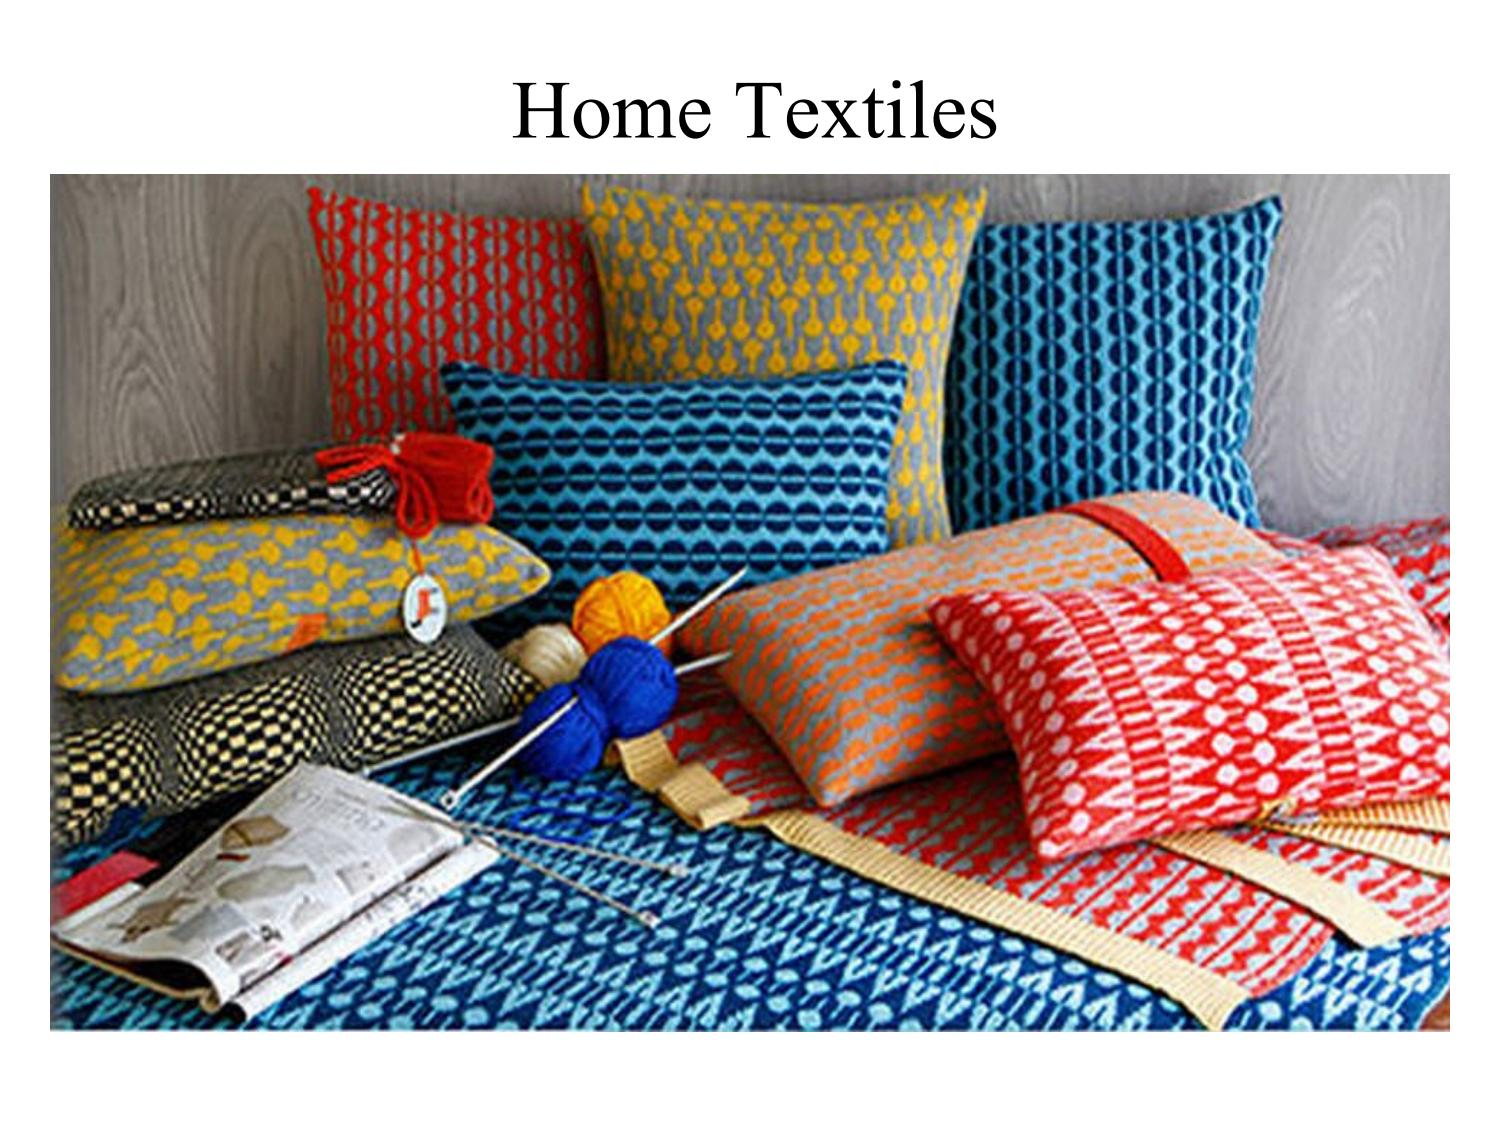 Indo Count launches value driven Home Textiles Brand Layers